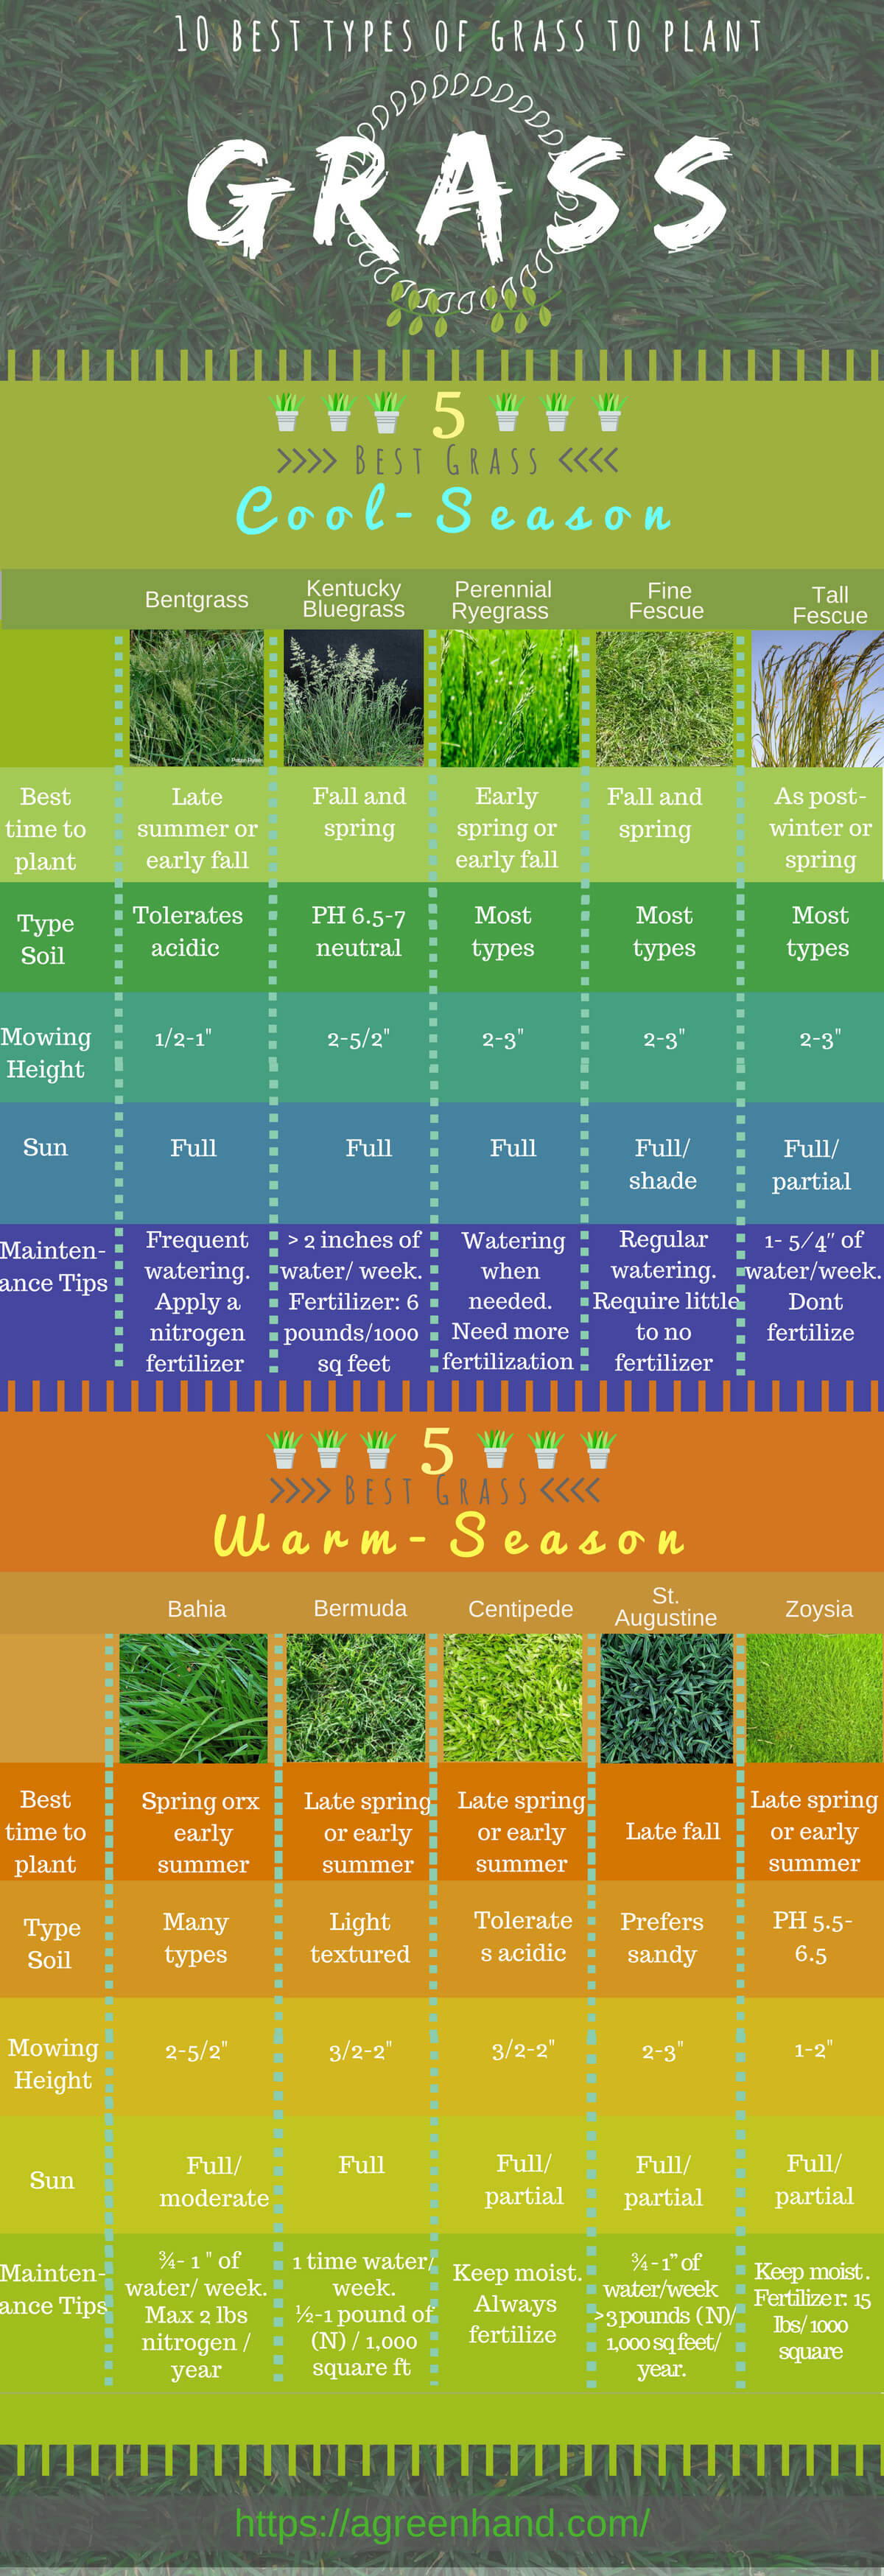 10 Popular Types of Grass to Plant in All Seasons